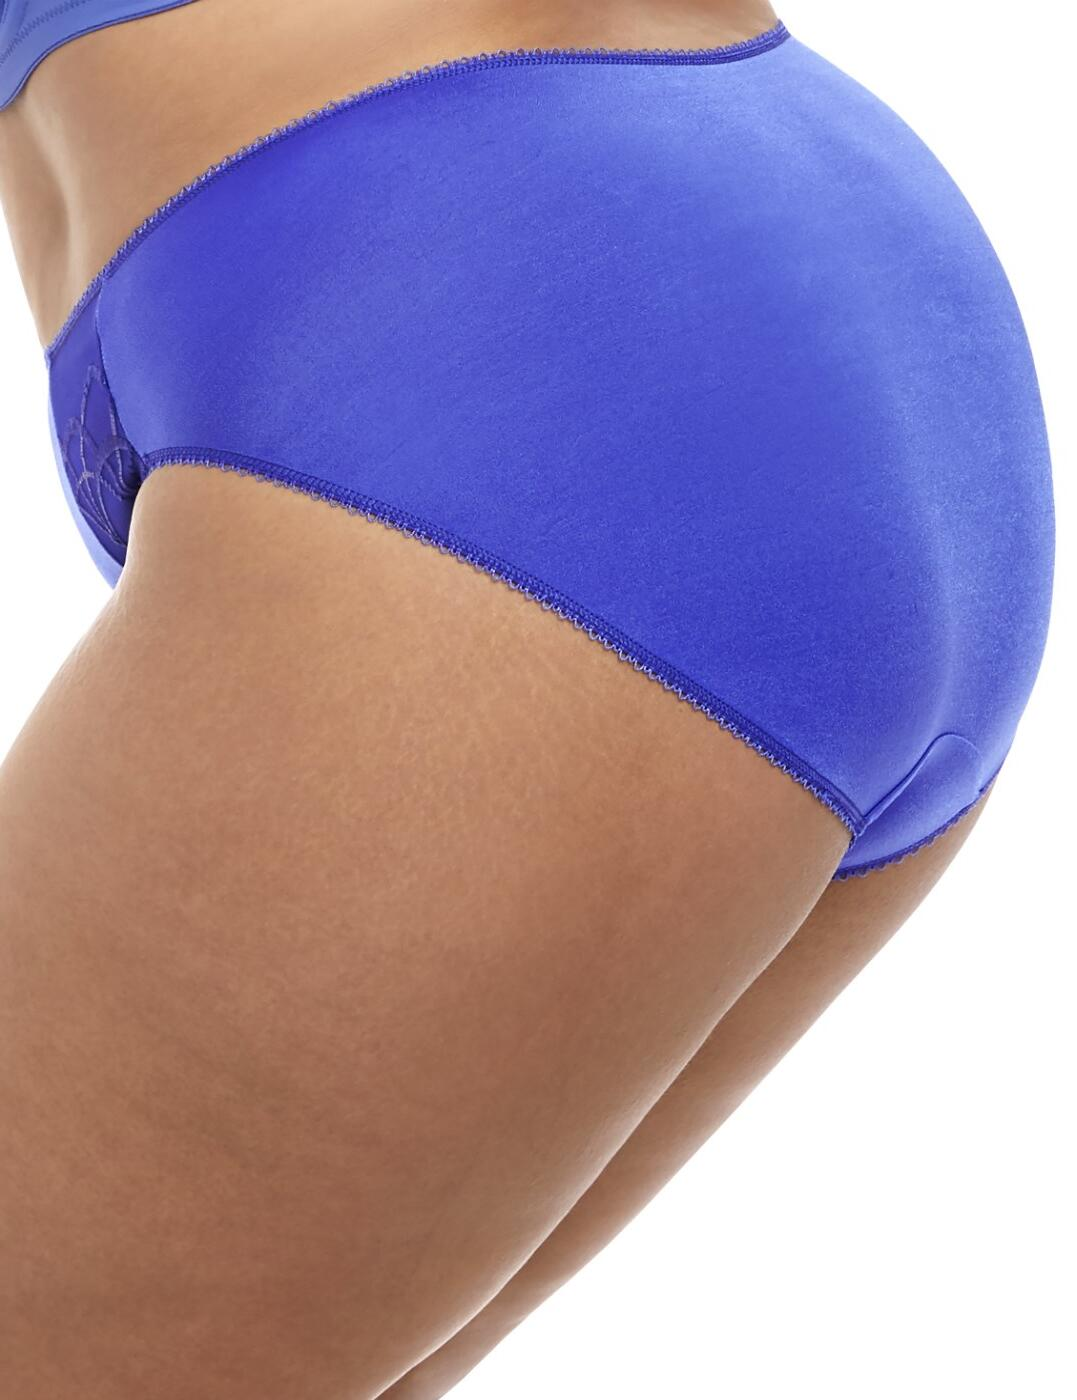 Elomi-Lingerie-Cate-Brief-Knickers-4035-New-Womens-Lingerie thumbnail 5